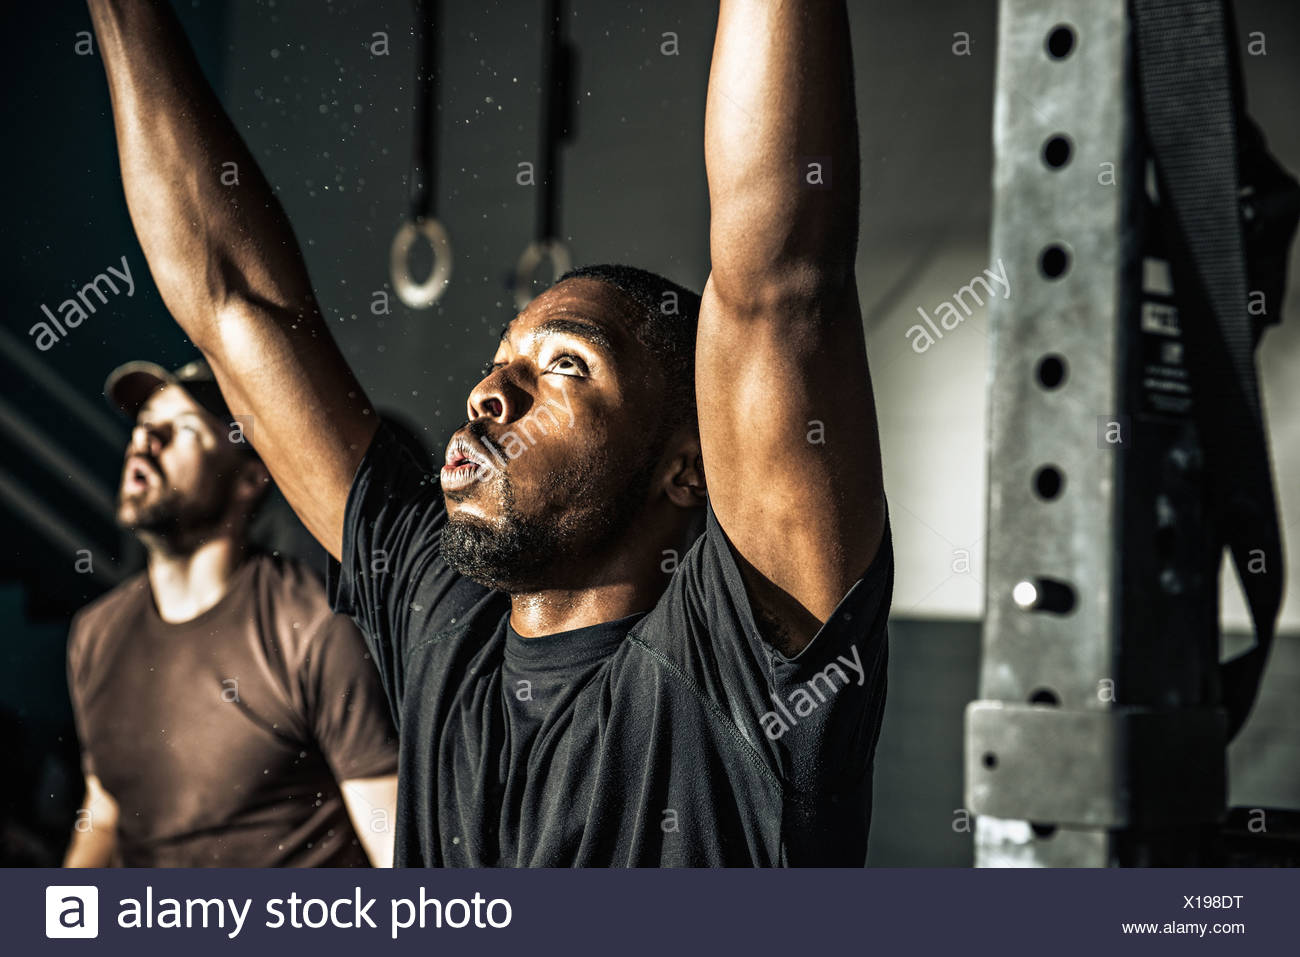 Close up of young man training on exercise bar in gymnasium Photo Stock